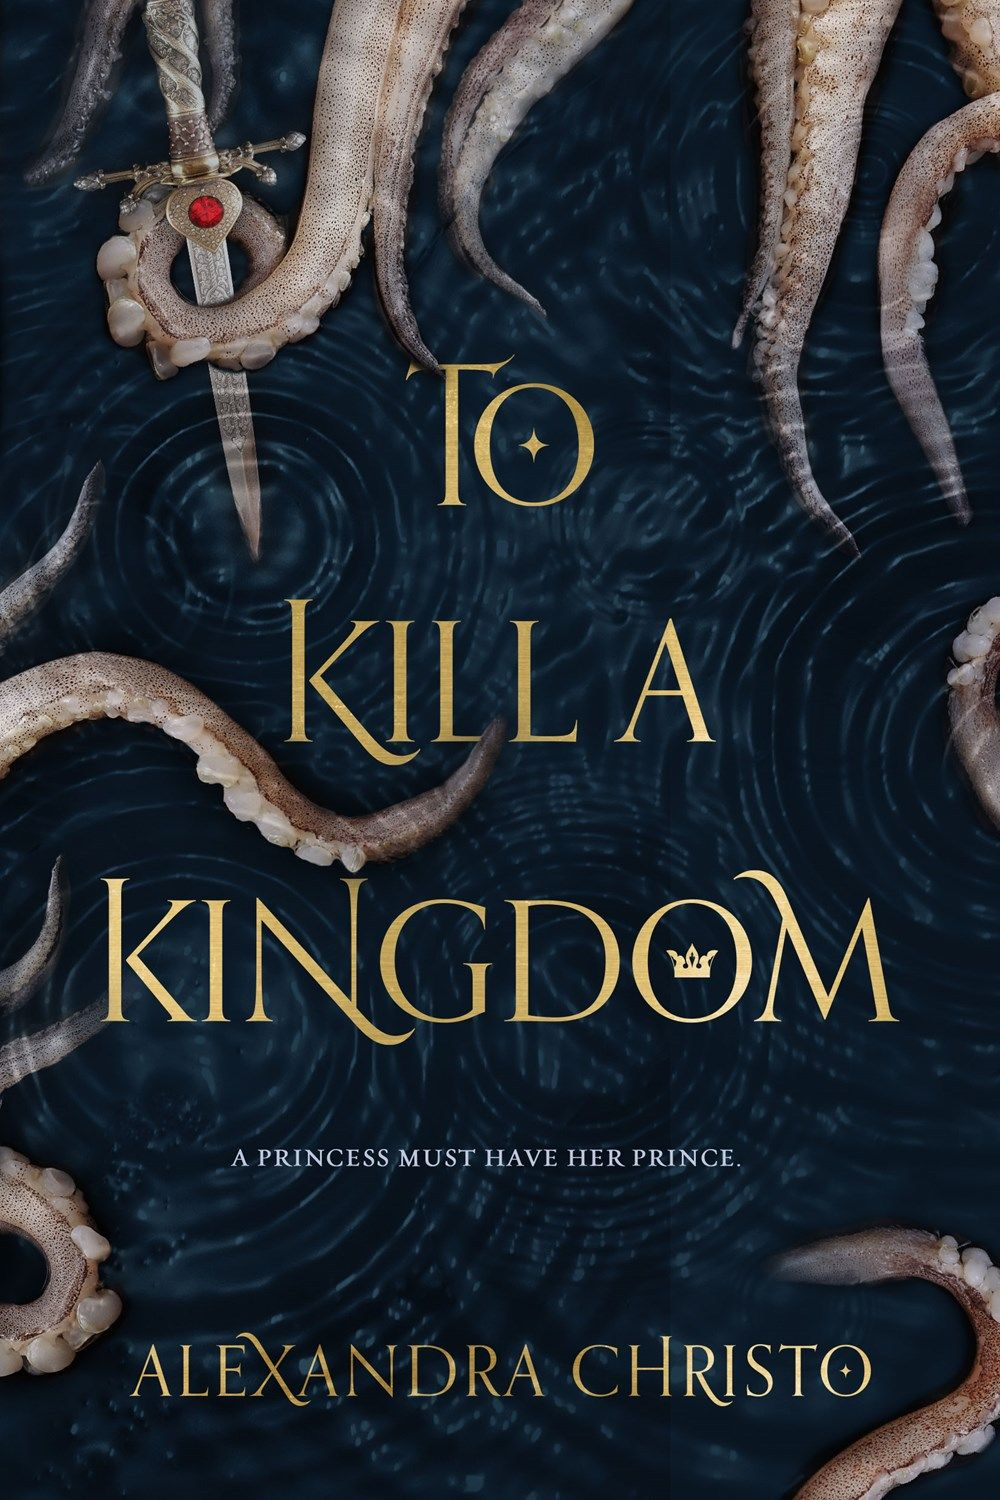 A Book with Everything but a Hook | To Kill a Kingdom by Alexandra Christo